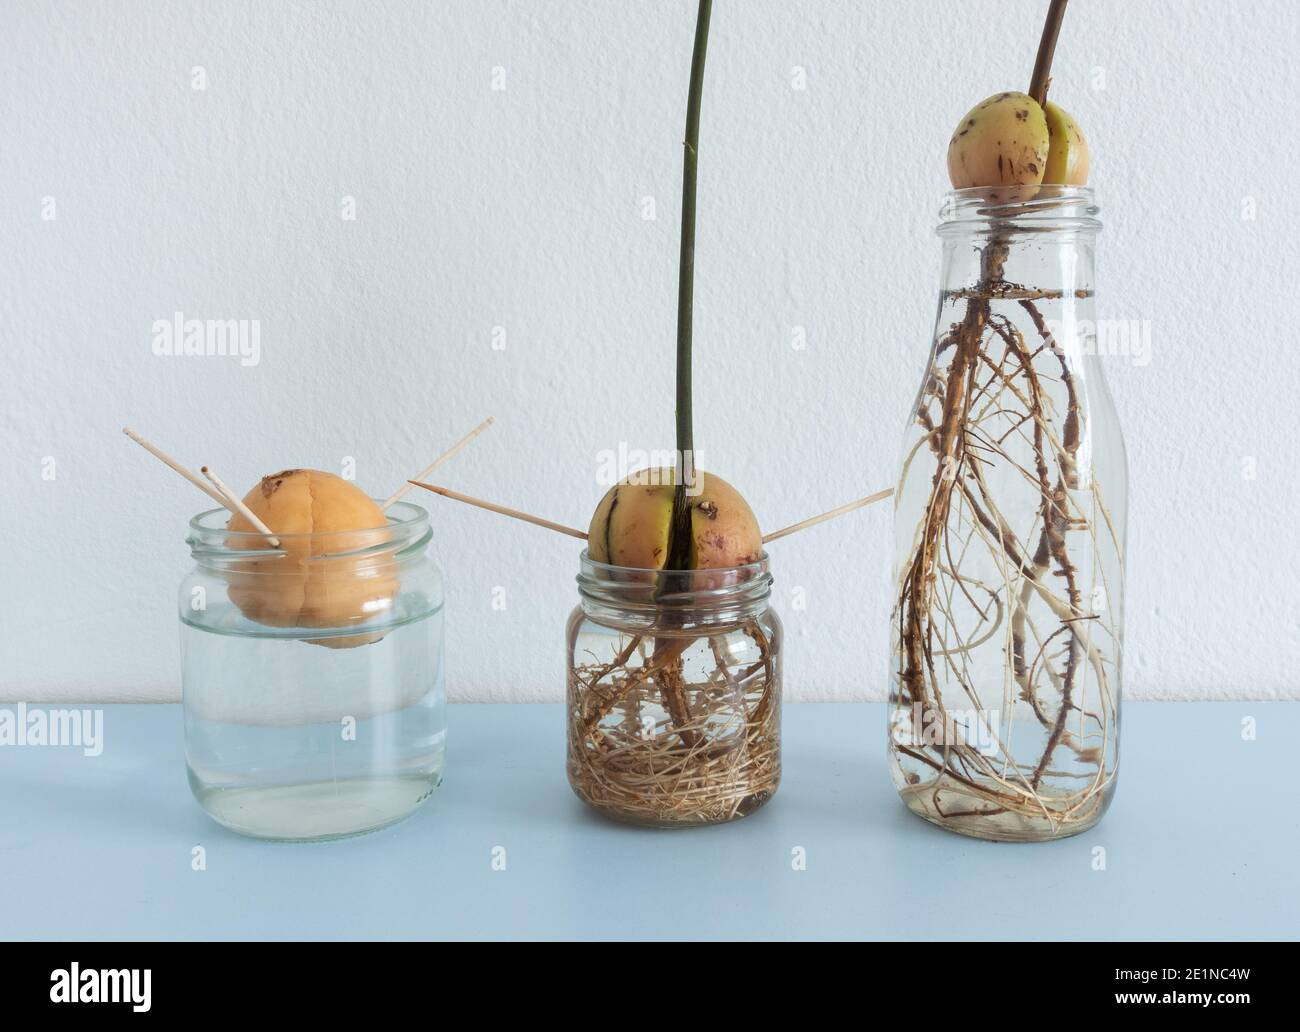 Image showing different stages of Avocado seed/stones growing in ...